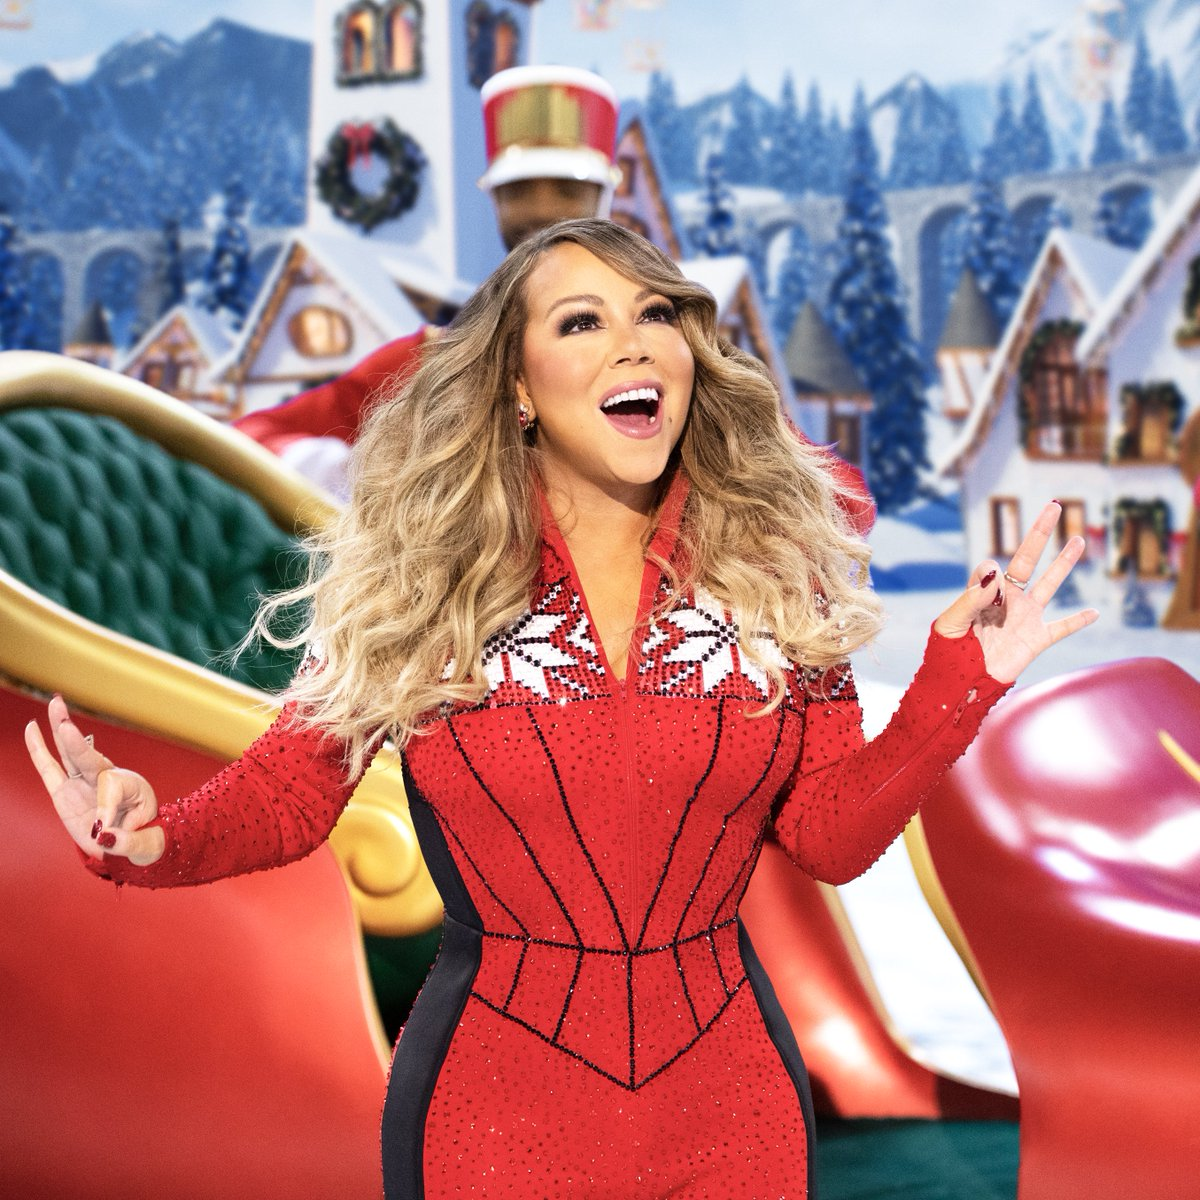 All we want for Christmas is for December 4 to come earlier. #MariahsMagicalChristmas   Watch only on Apple TV+